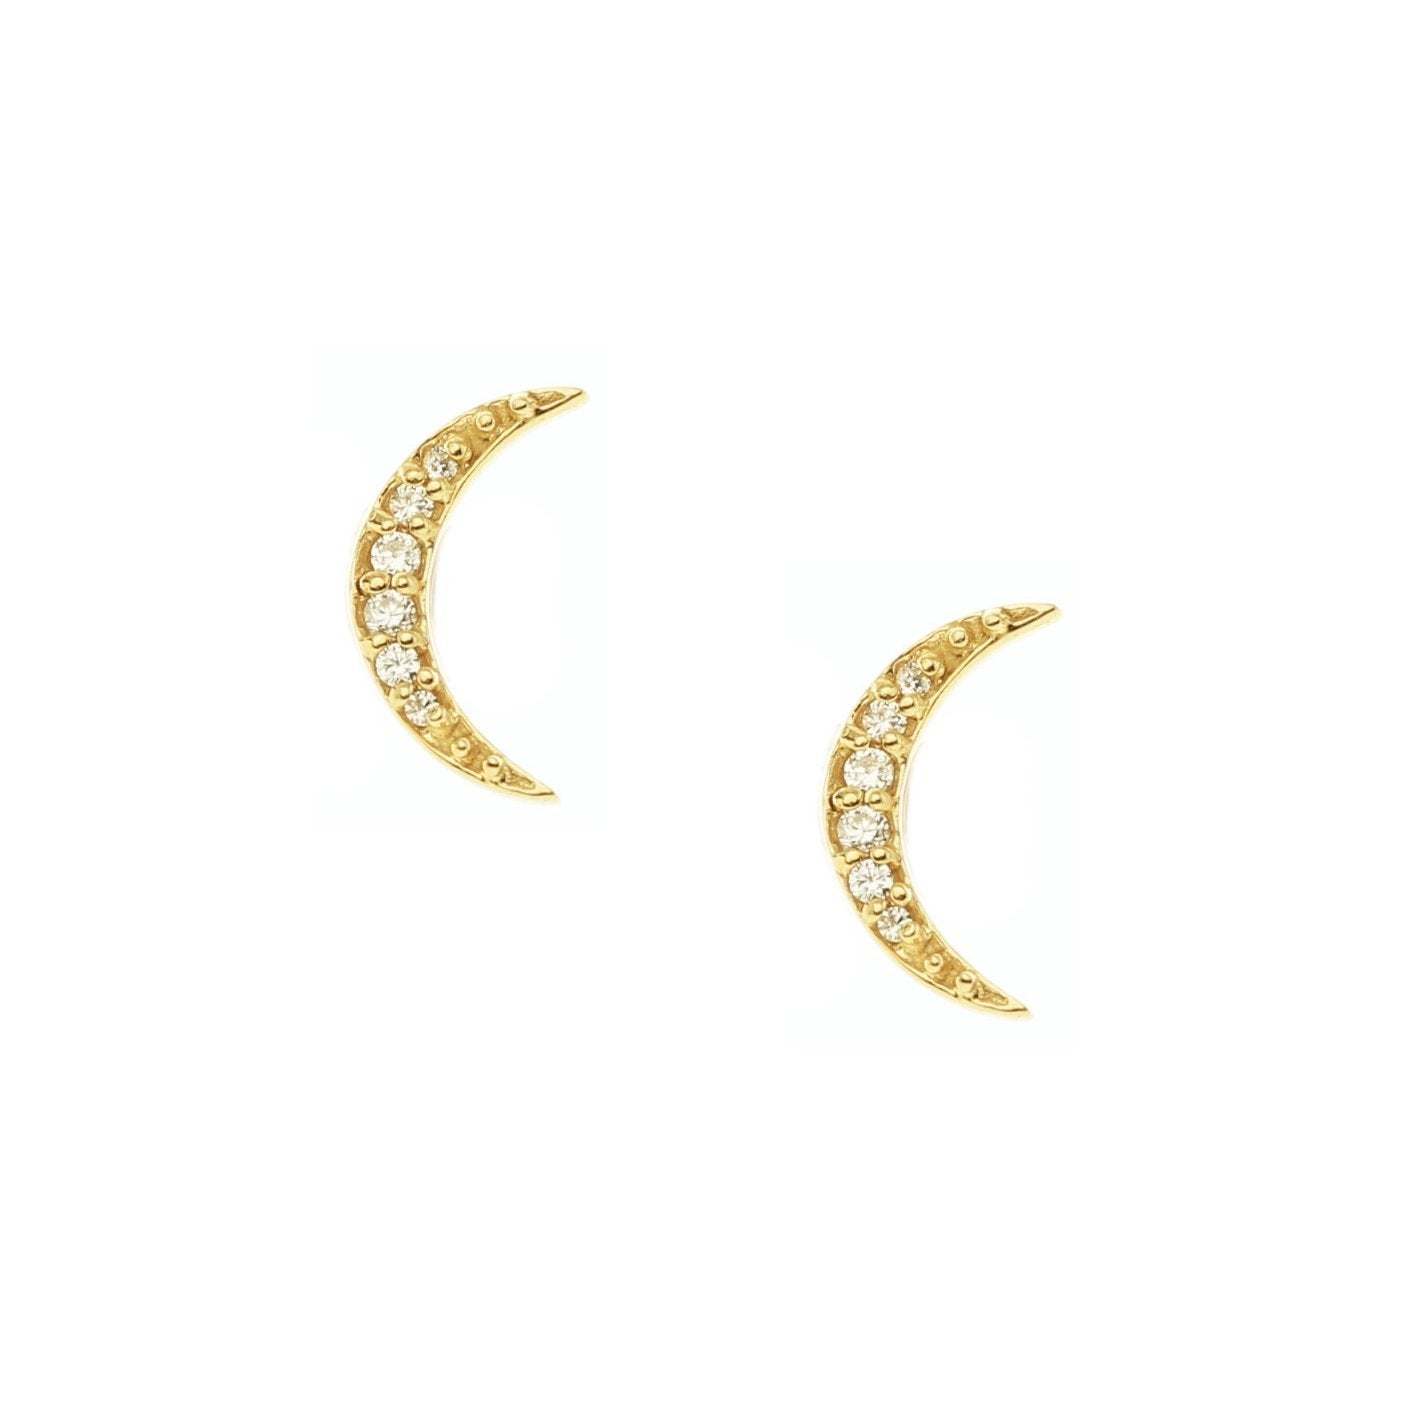 MINI DREAM LUNA STUDS - CUBIC ZIRCONIA & GOLD - SO PRETTY CARA COTTER